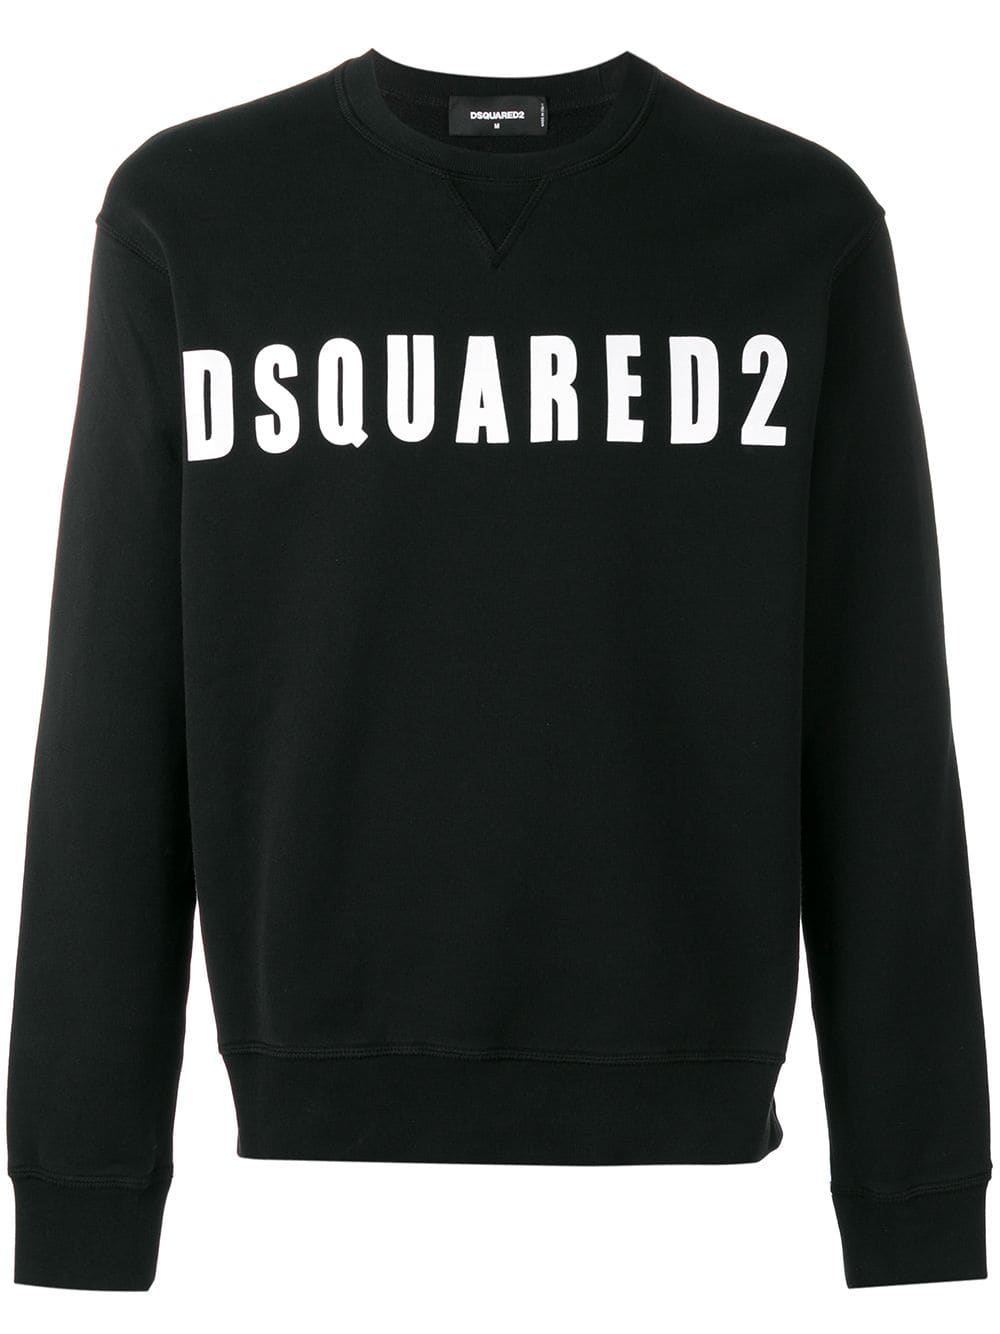 e1255f7eff6 Dsquared2 logo sweatshirt - Black in 2019 | Products | Sweatshirts ...